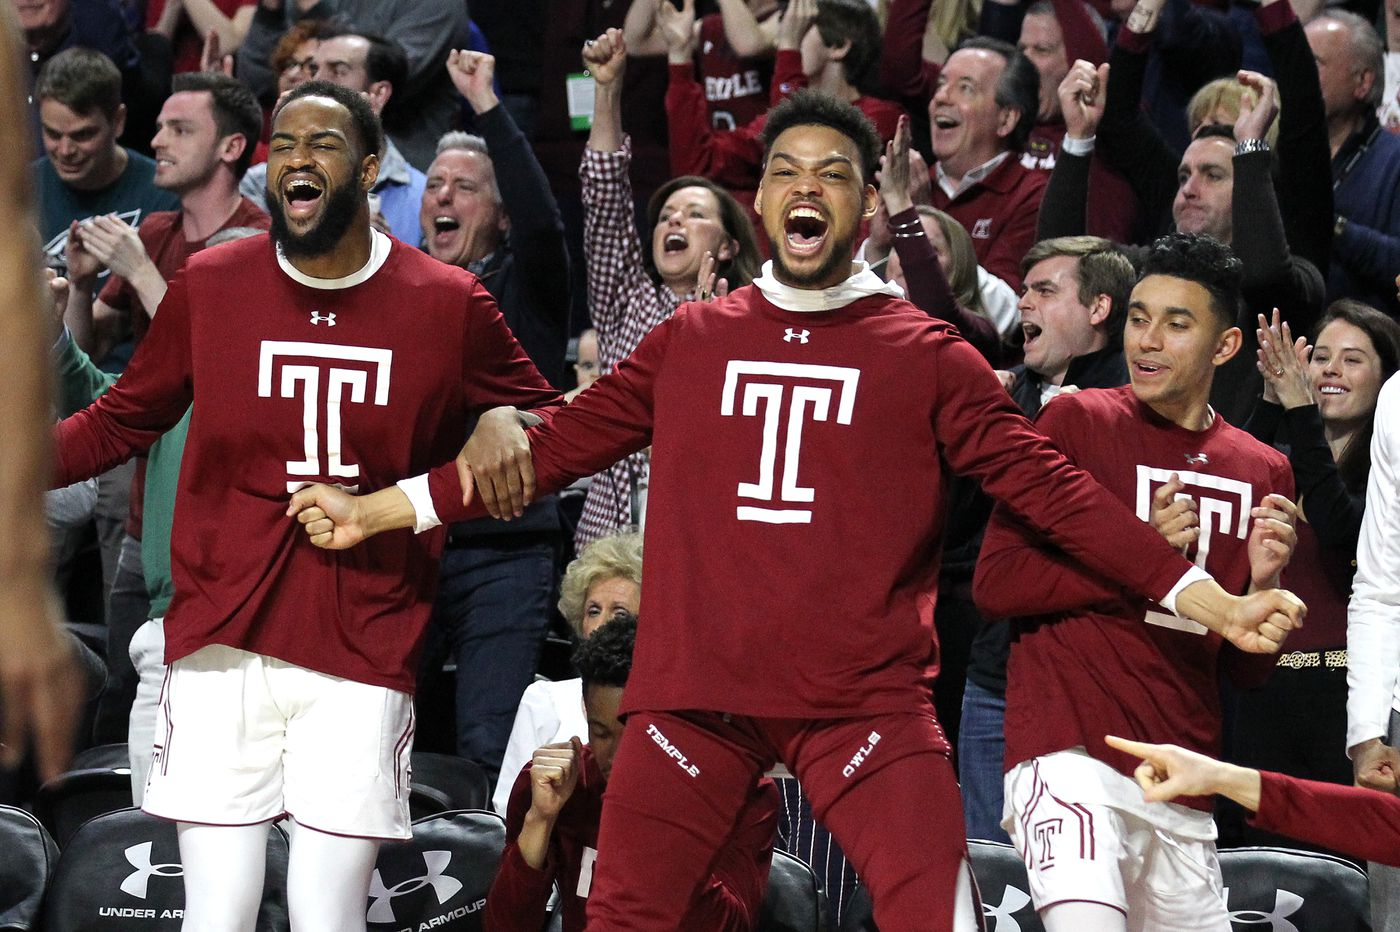 Temple safely in the NCAA Tournament, two CBS basketball voices predict